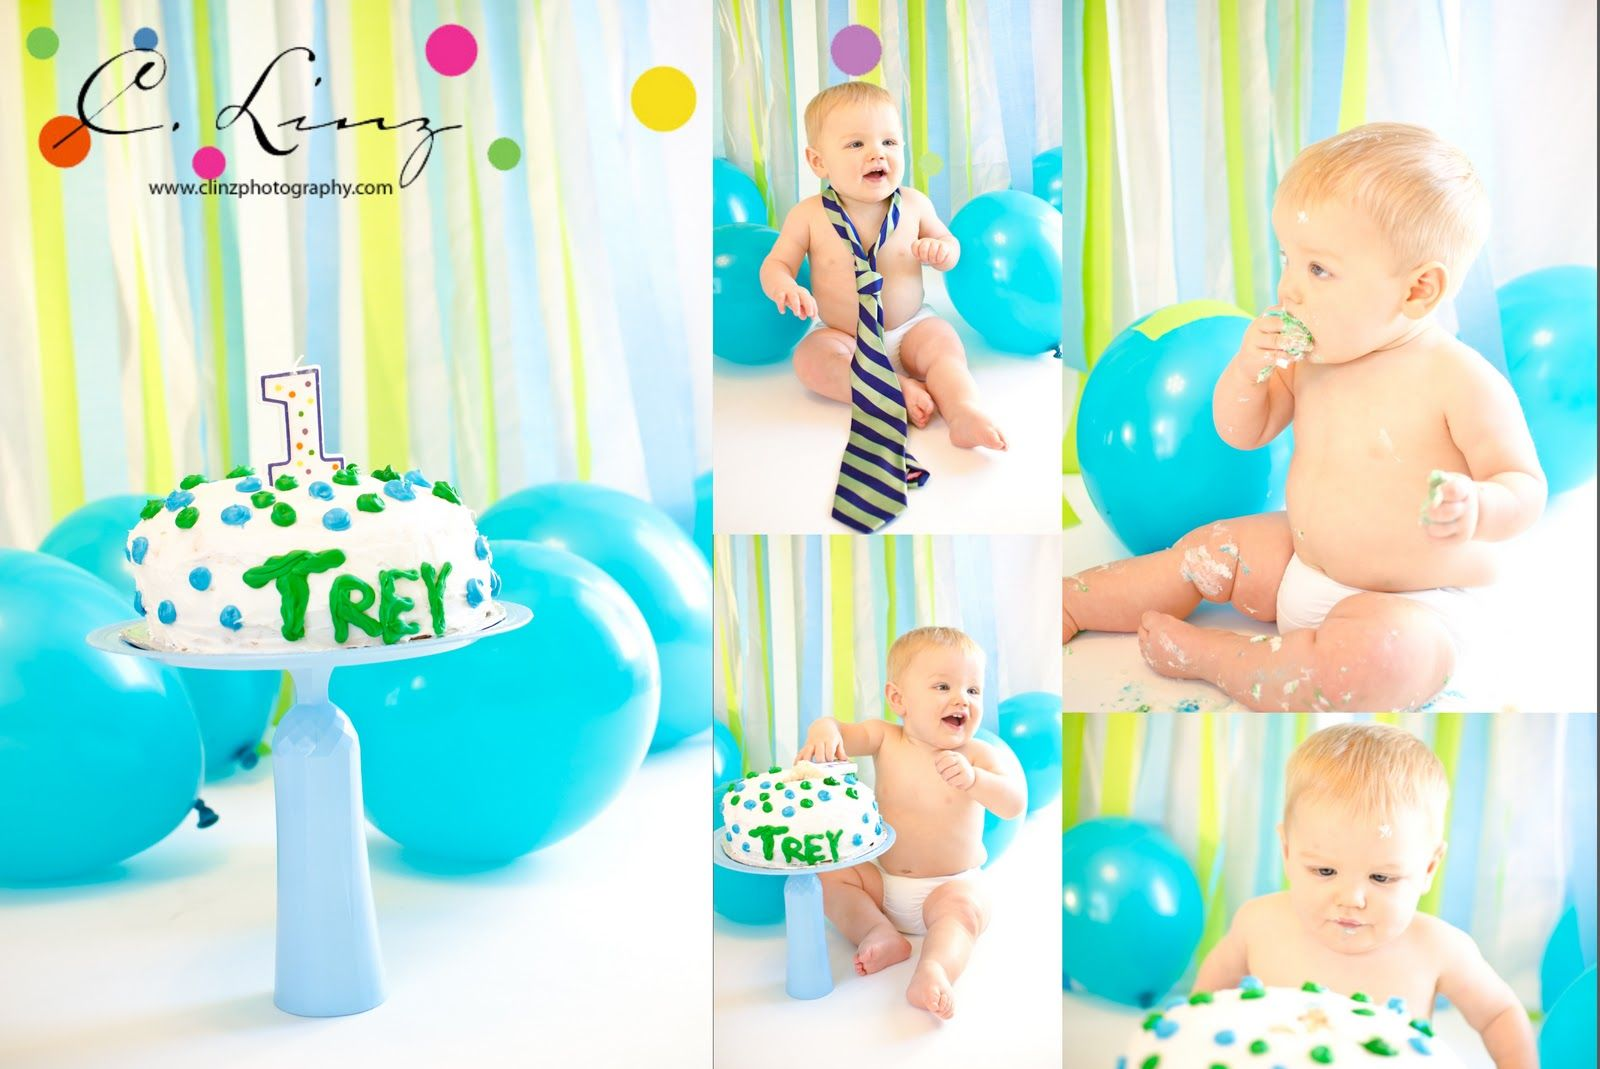 Pin By Tiffany Naessens On Austin S 1st Bday Baby Boy Pictures Photographing Babies Happy First Birthday